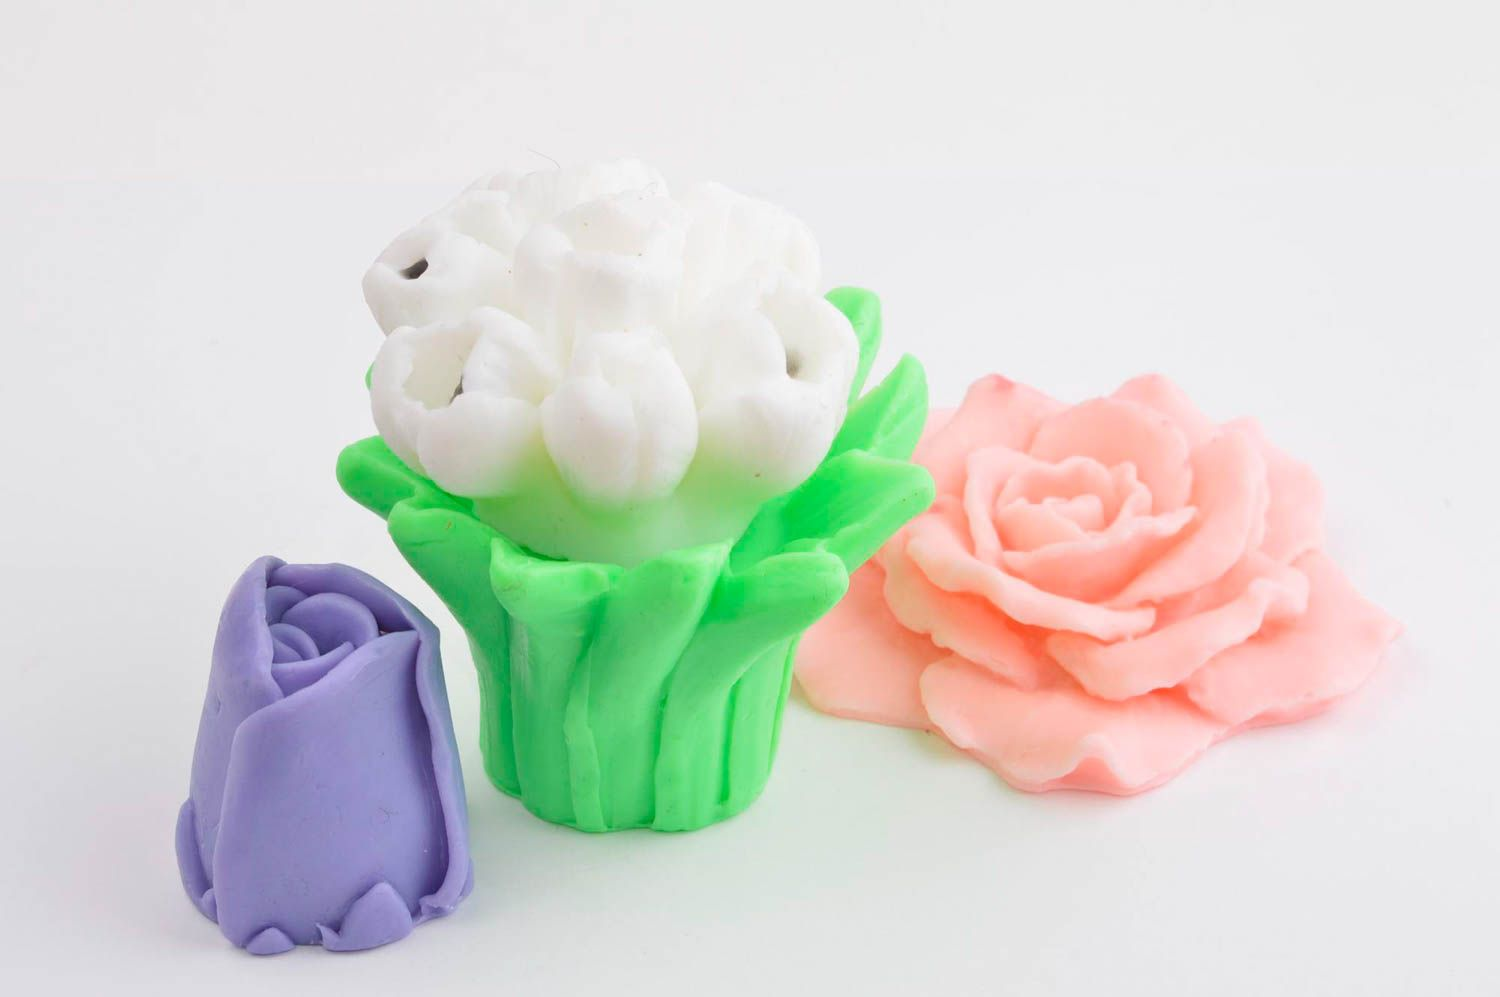 Handmade soap set natural cosmetics 4 flowers pieces natural soap gift idea photo 2